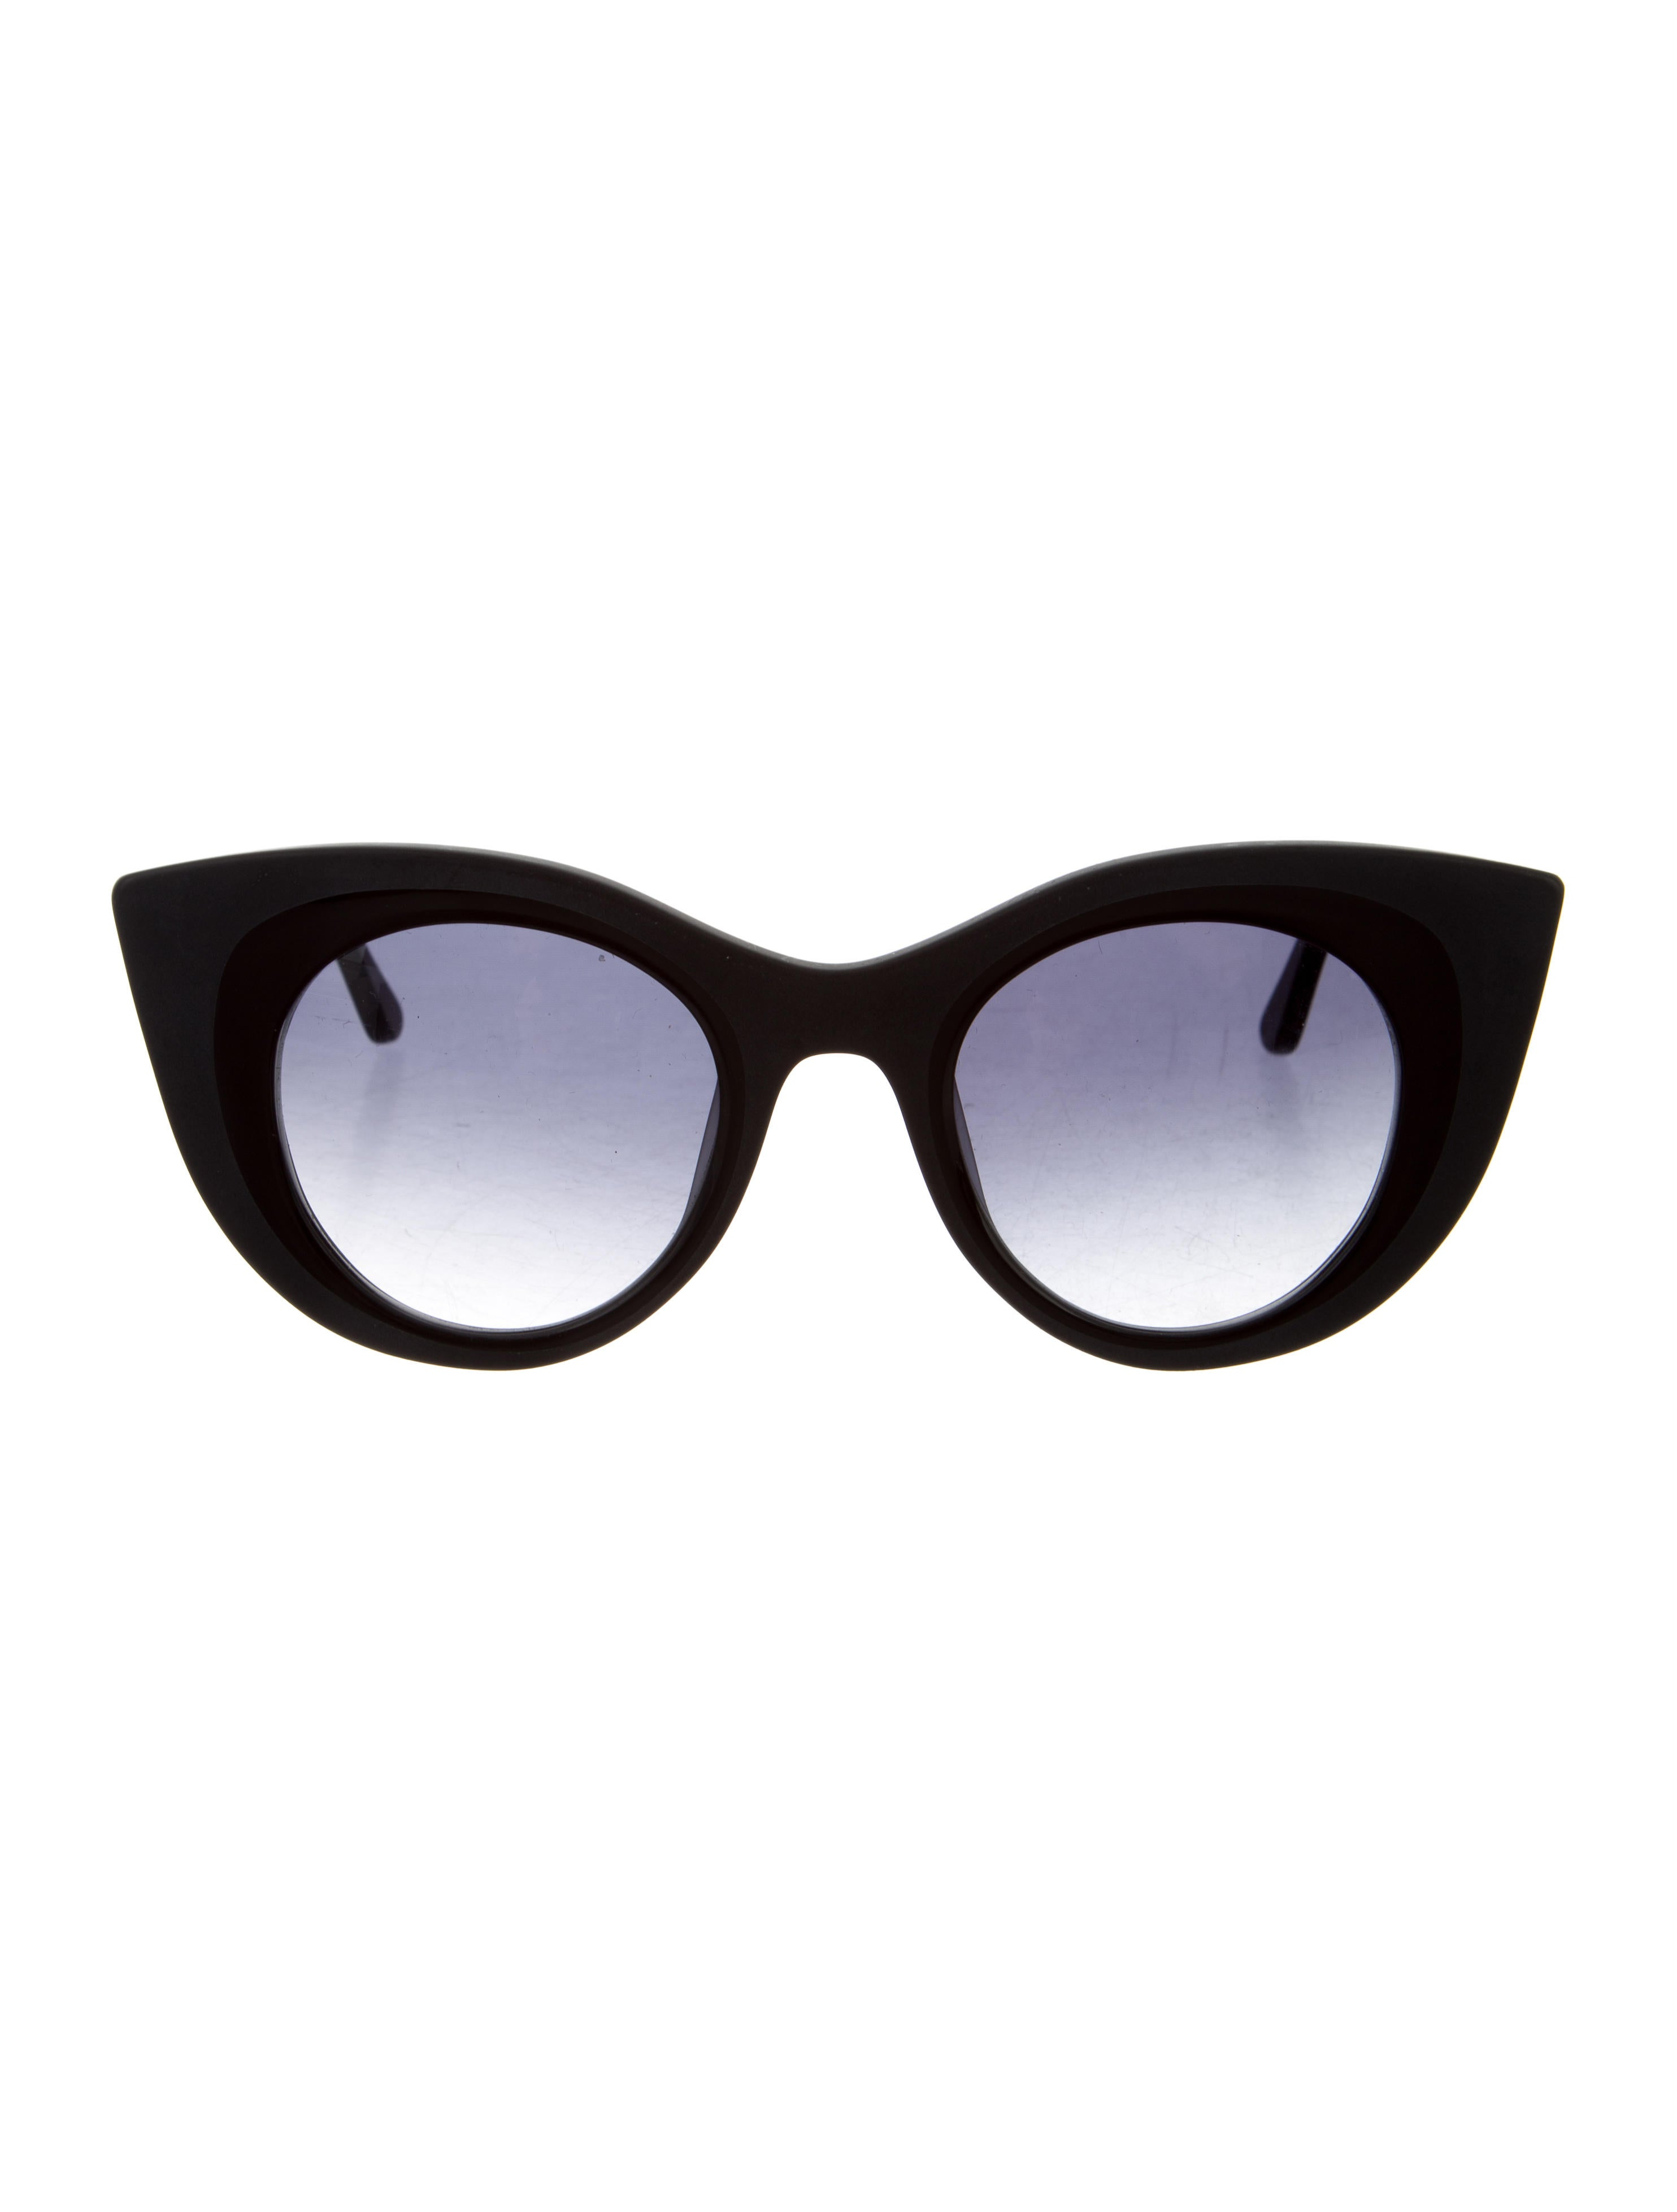 41d825ce0e Thierry Lasry Hedony Cat-Eye Sunglasses - Accessories - THL20622 ...